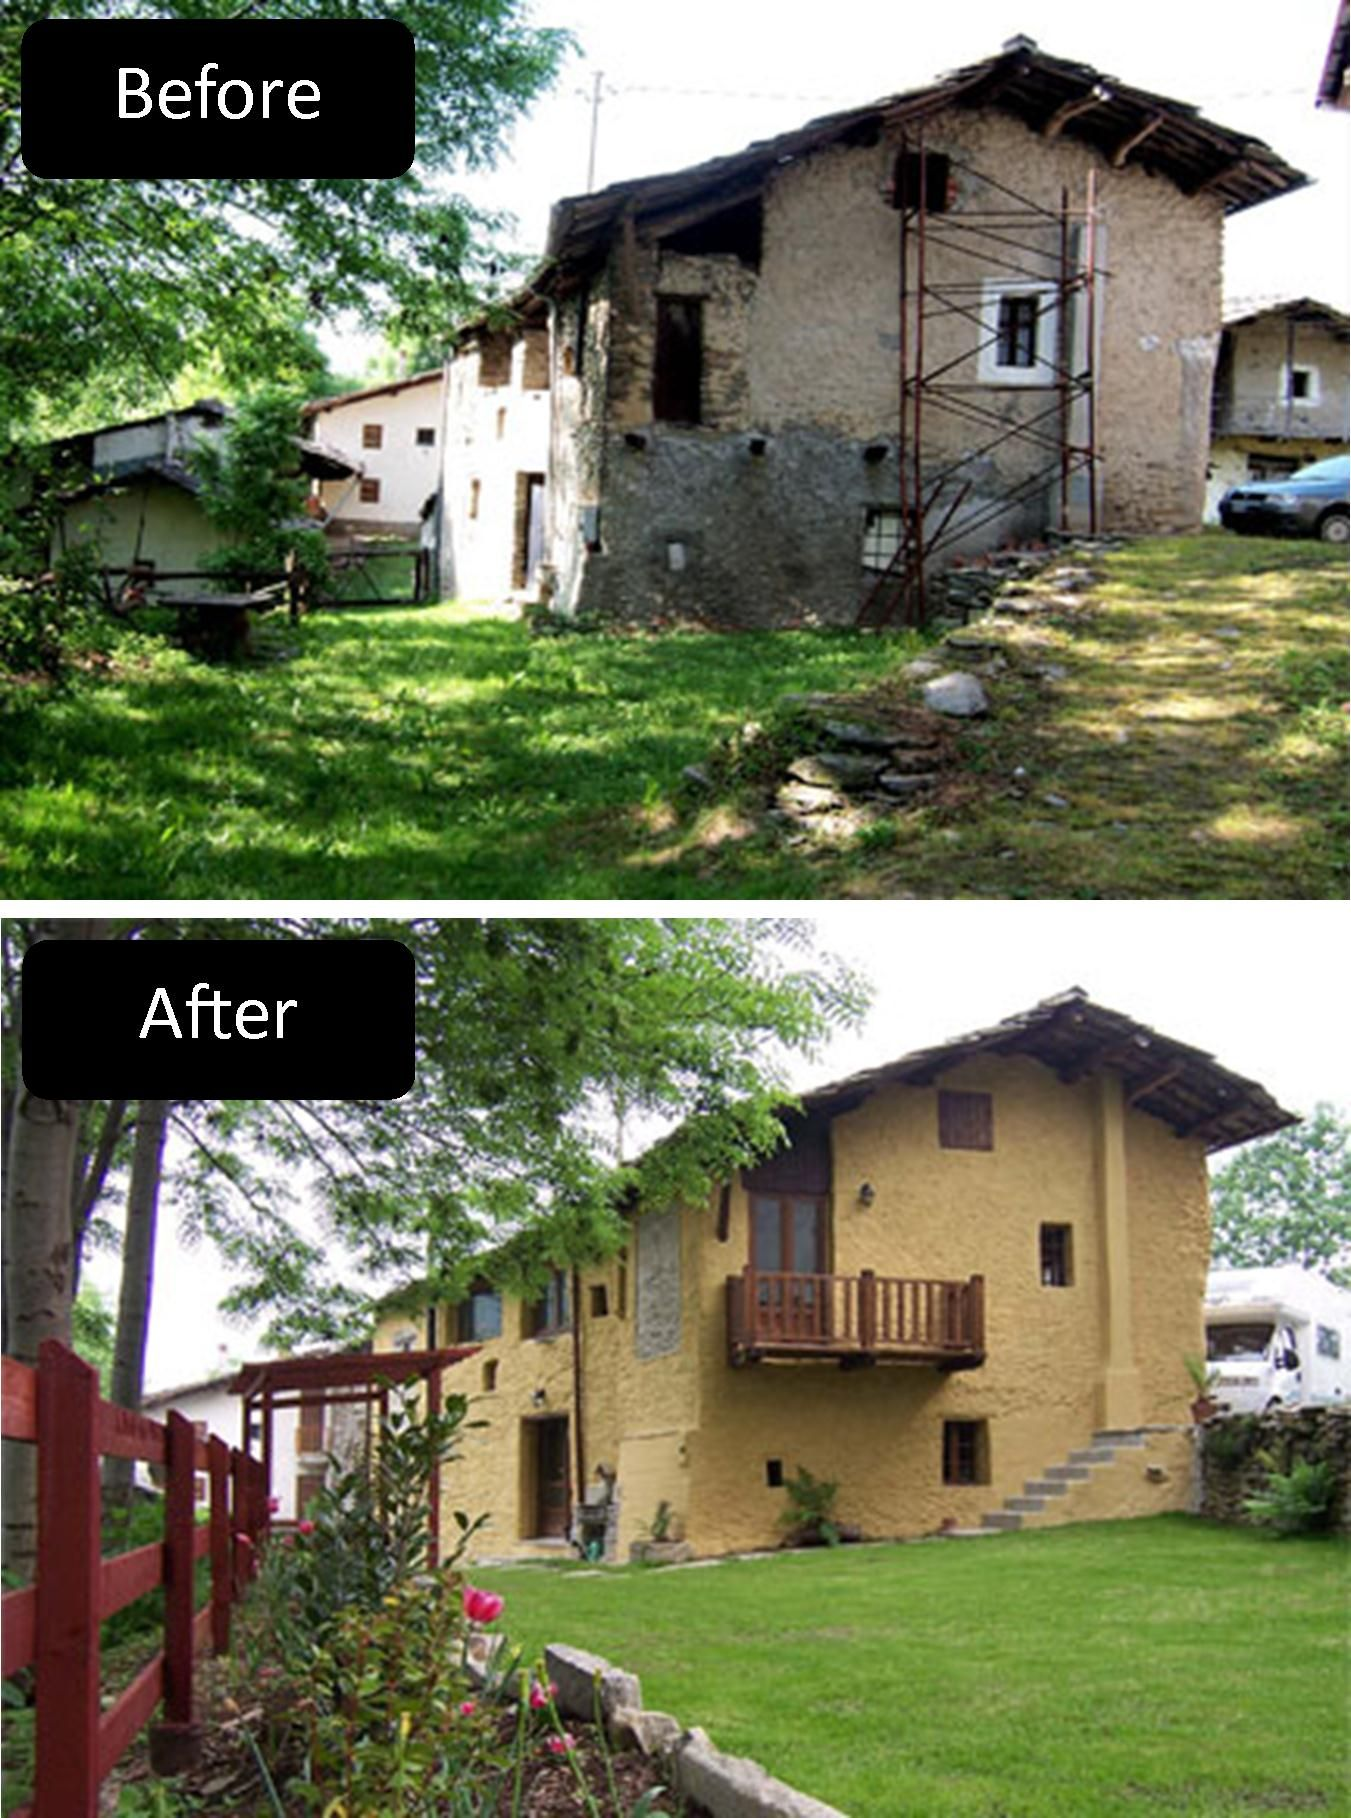 Before And After Borga Nari Renovating Italy Oh This Makes Me Hy